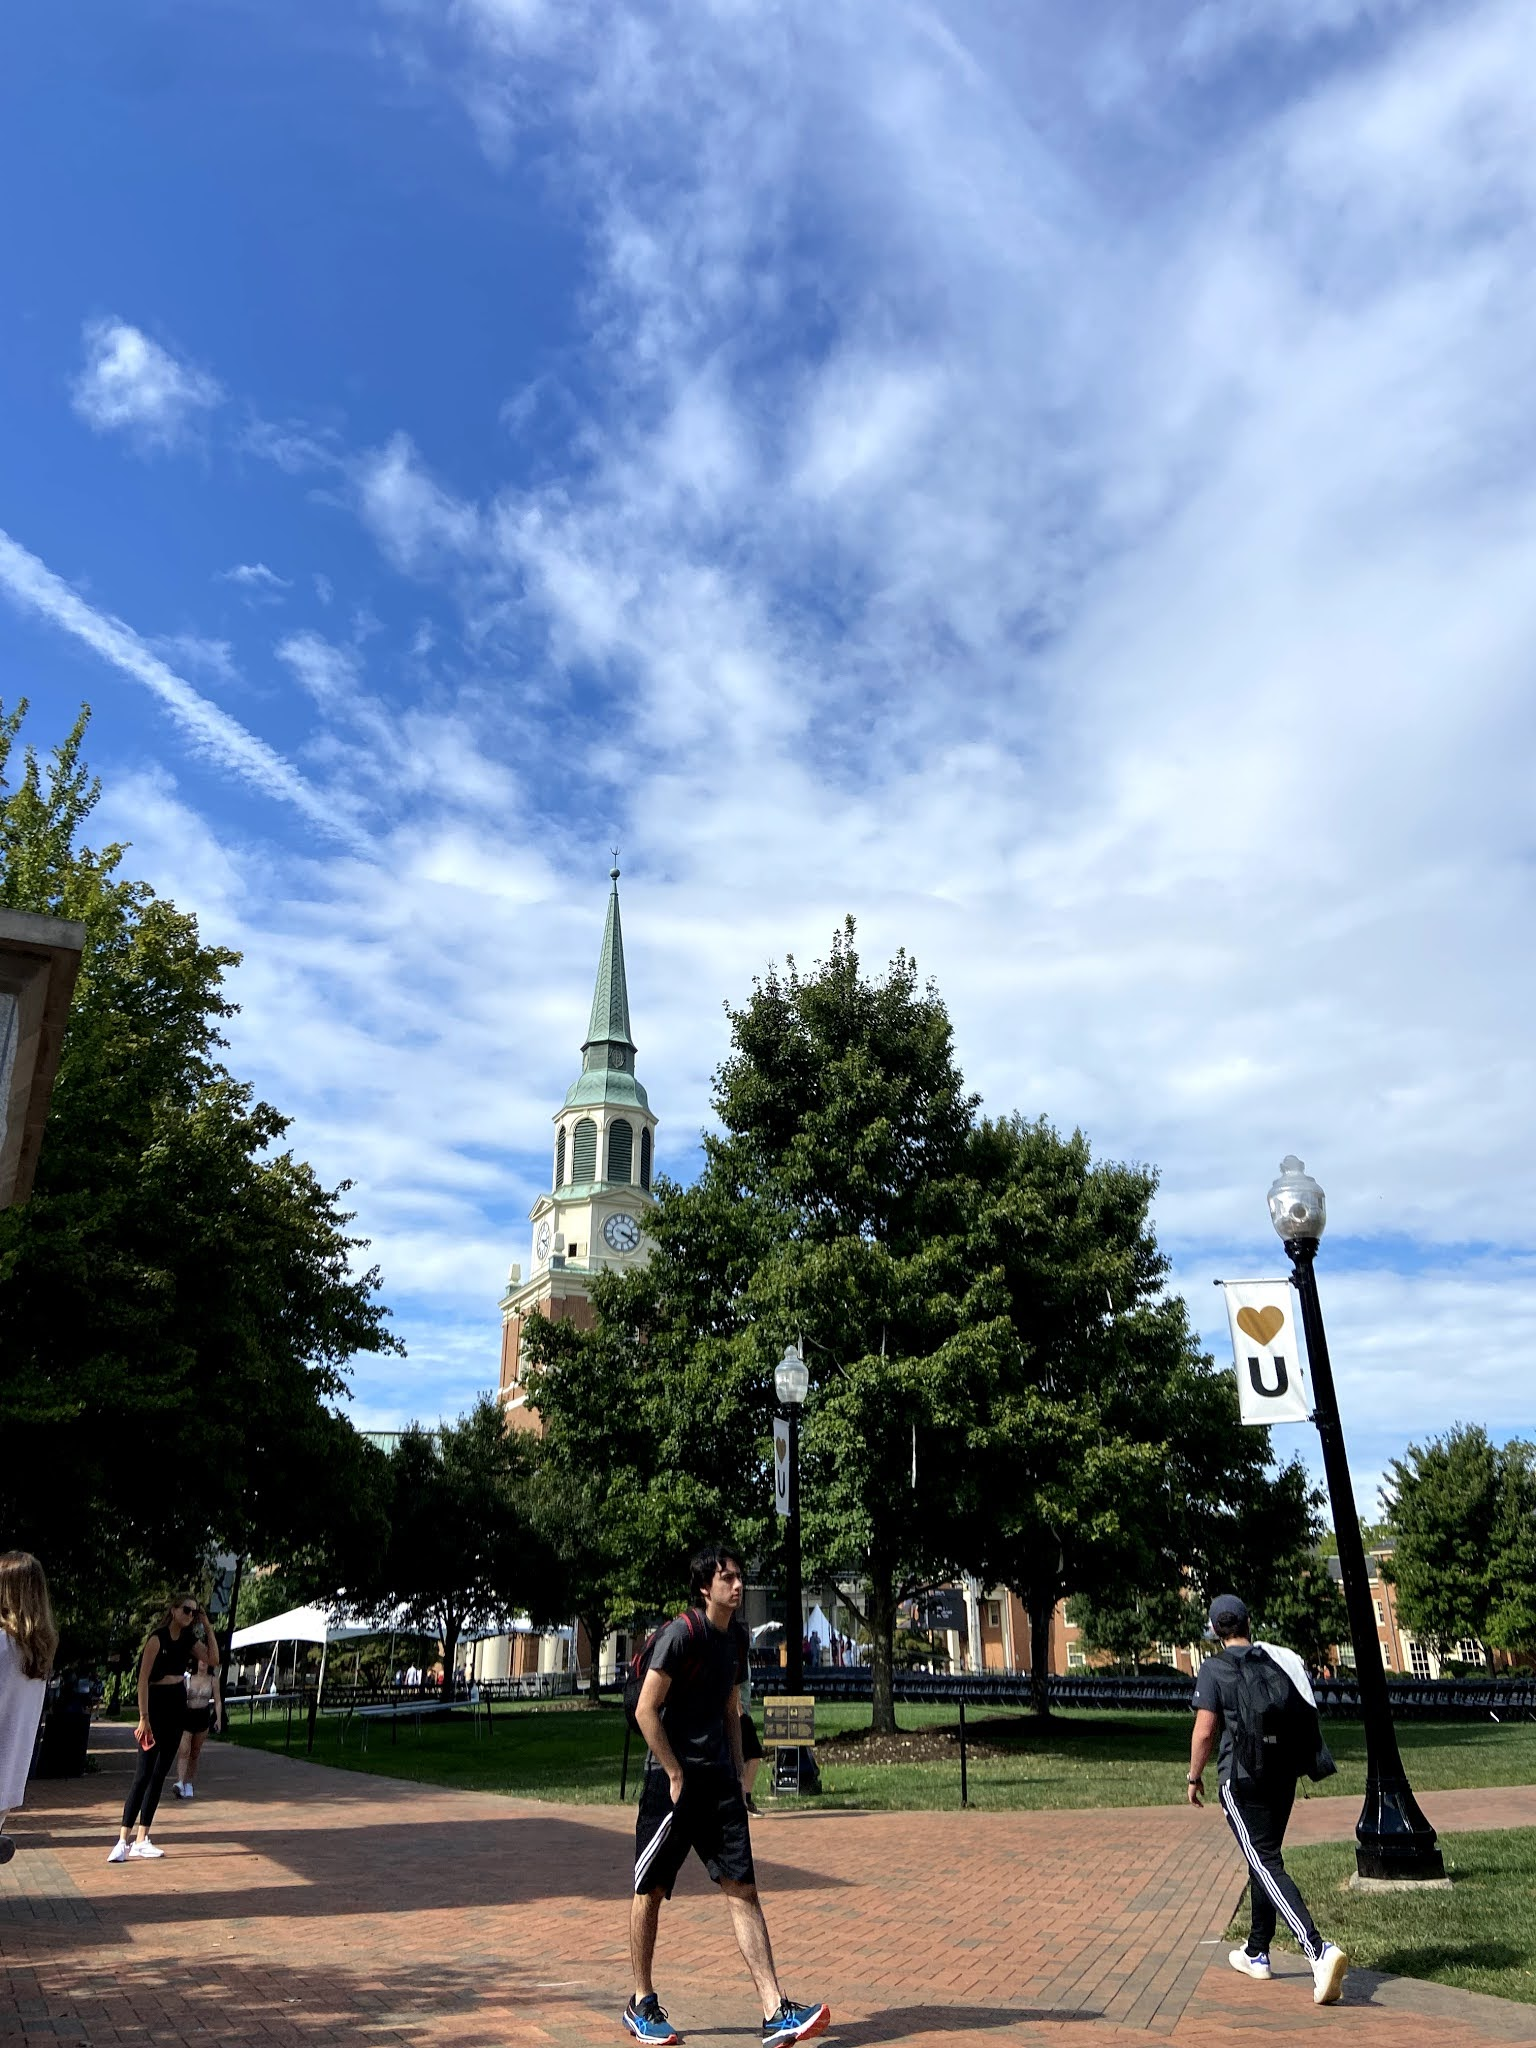 wfu, wake forest, wake forest graduation, reunion weekend, class of 2020